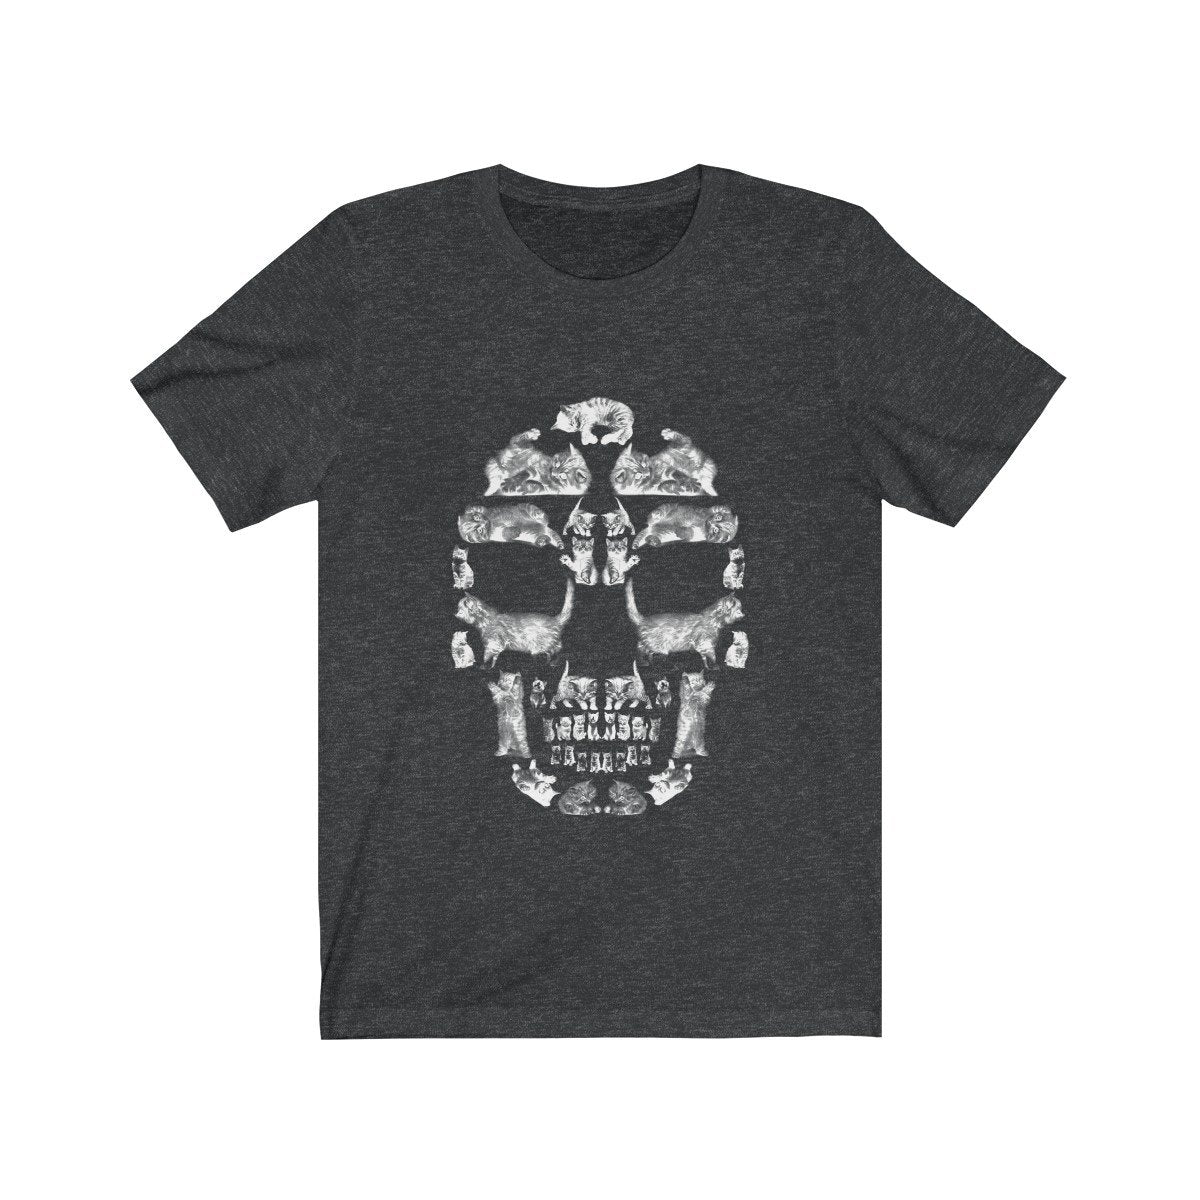 Kitten Skull - White - Unisex Jersey Short Sleeve Tee T-Shirt Printify Dark Grey Heather XS